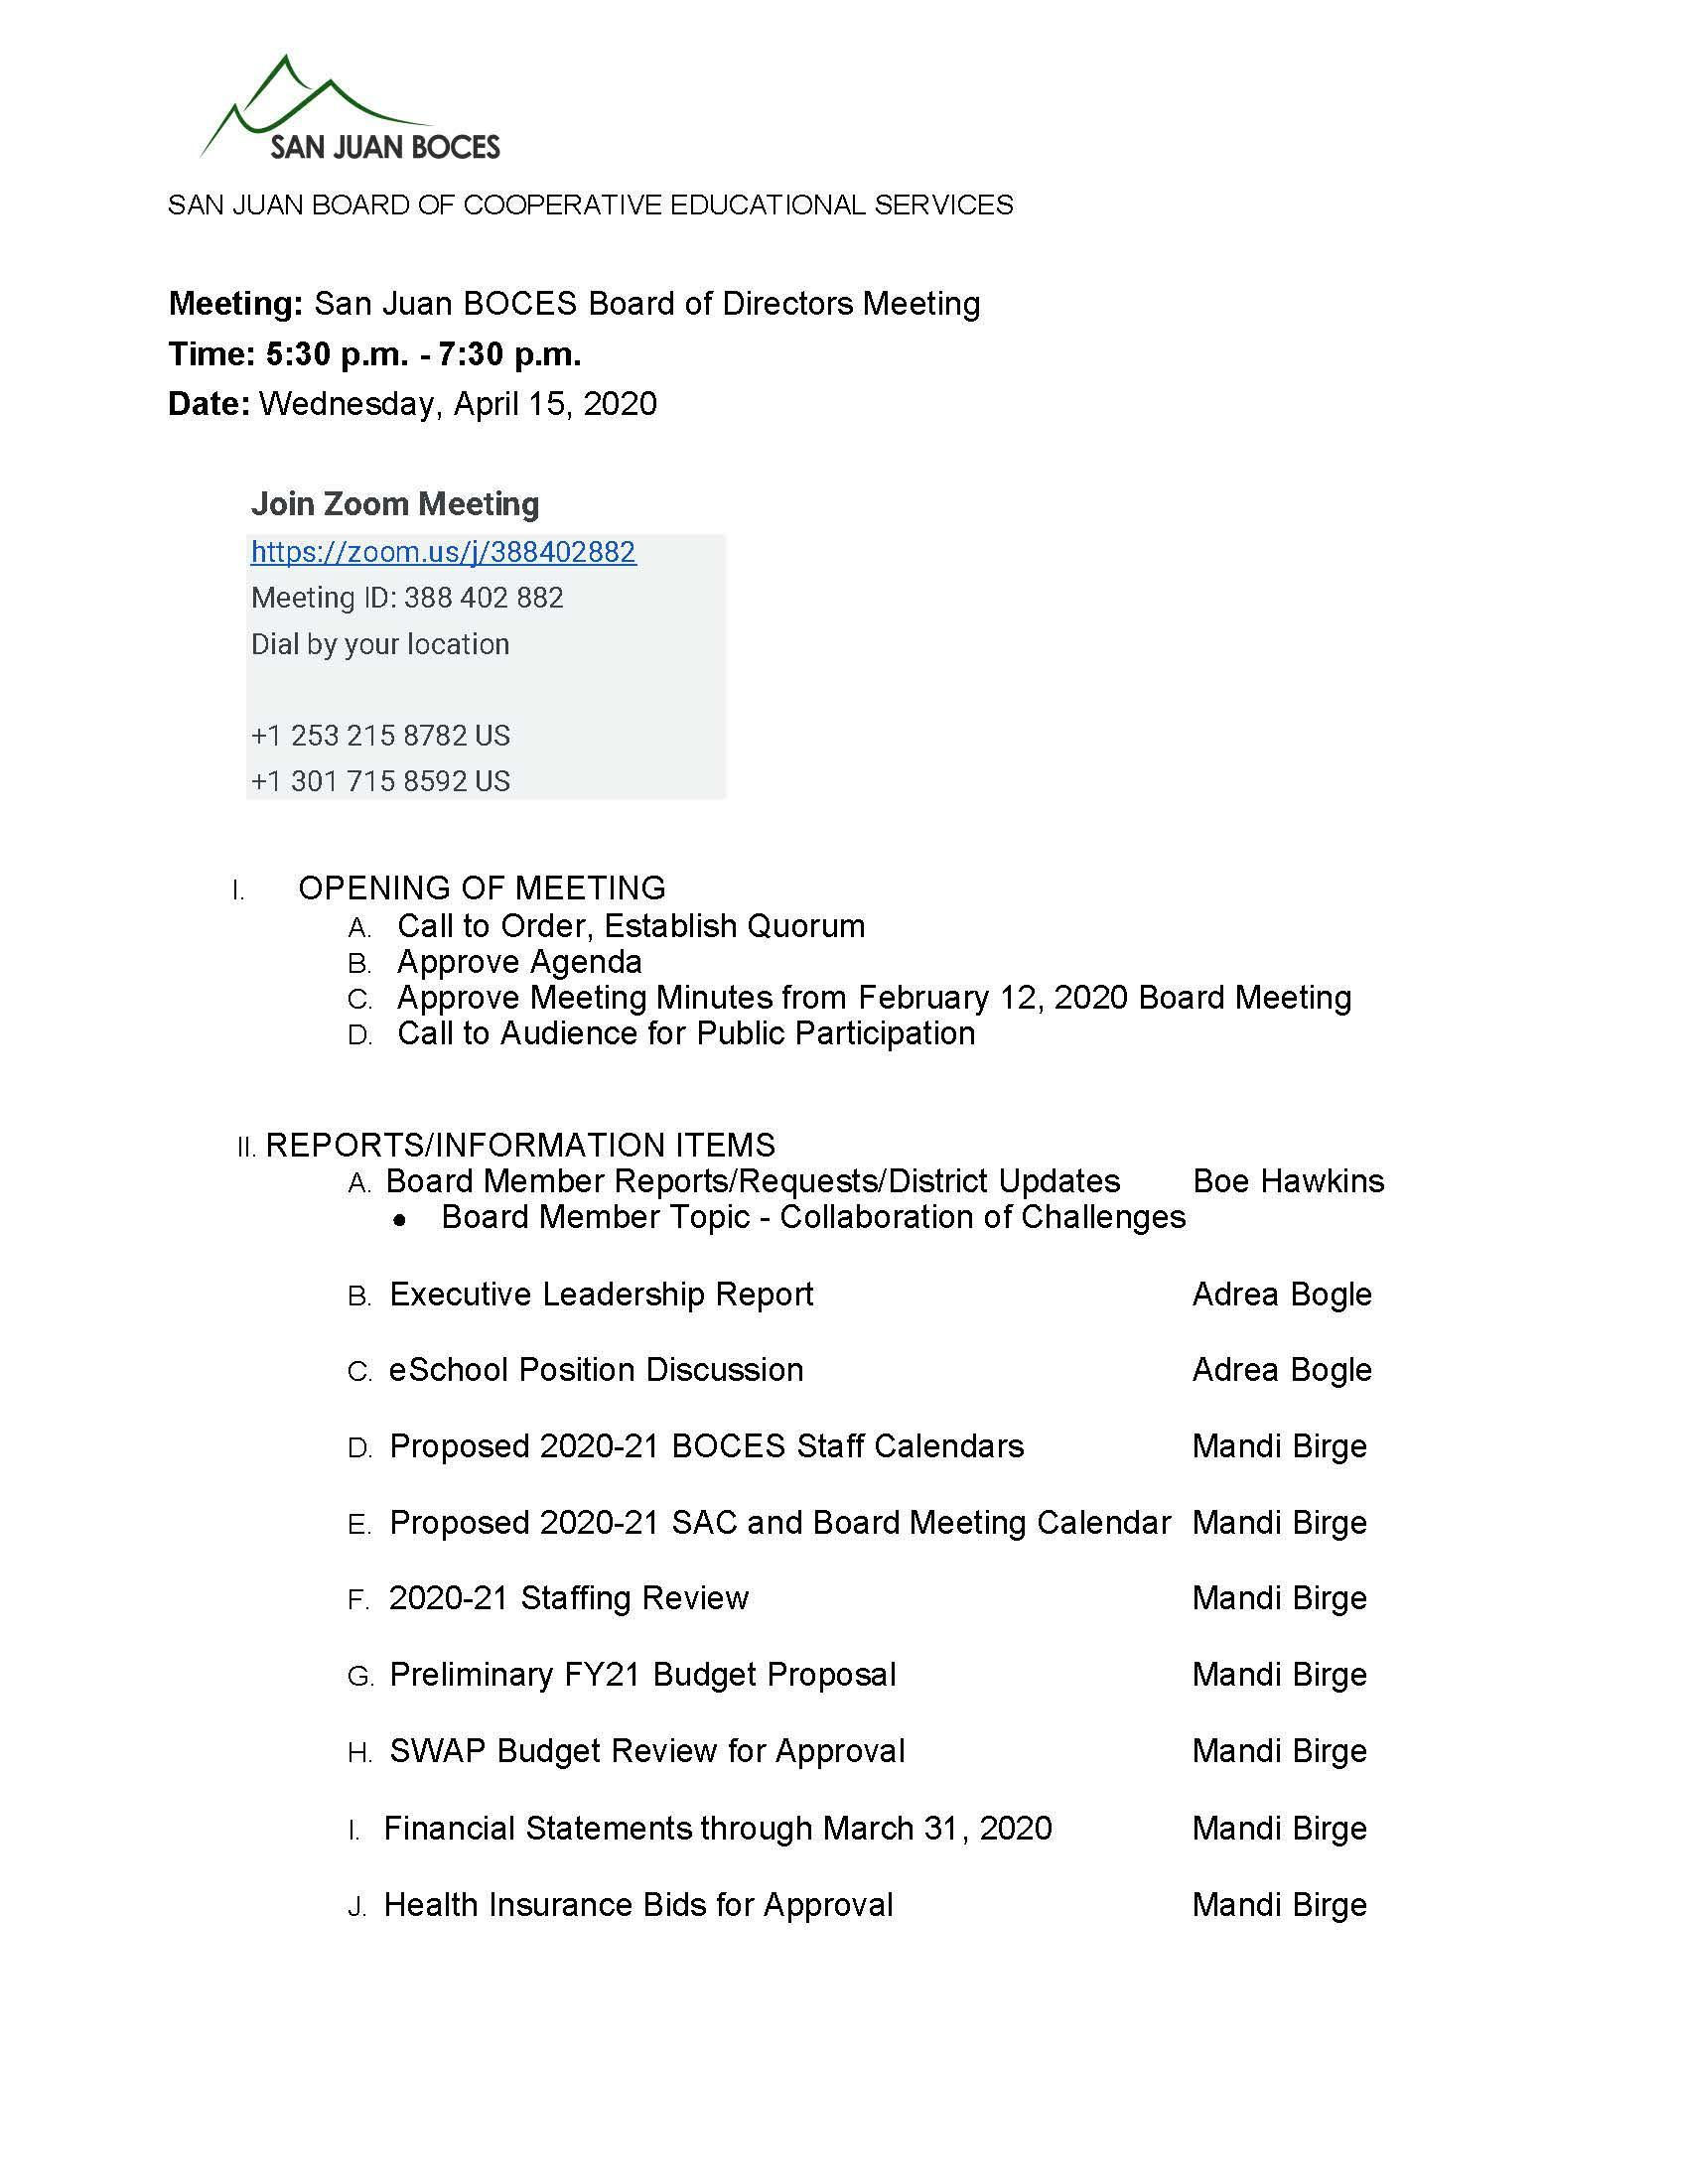 Board Meeting Agenda for April 15, 2020 at 5:30pm